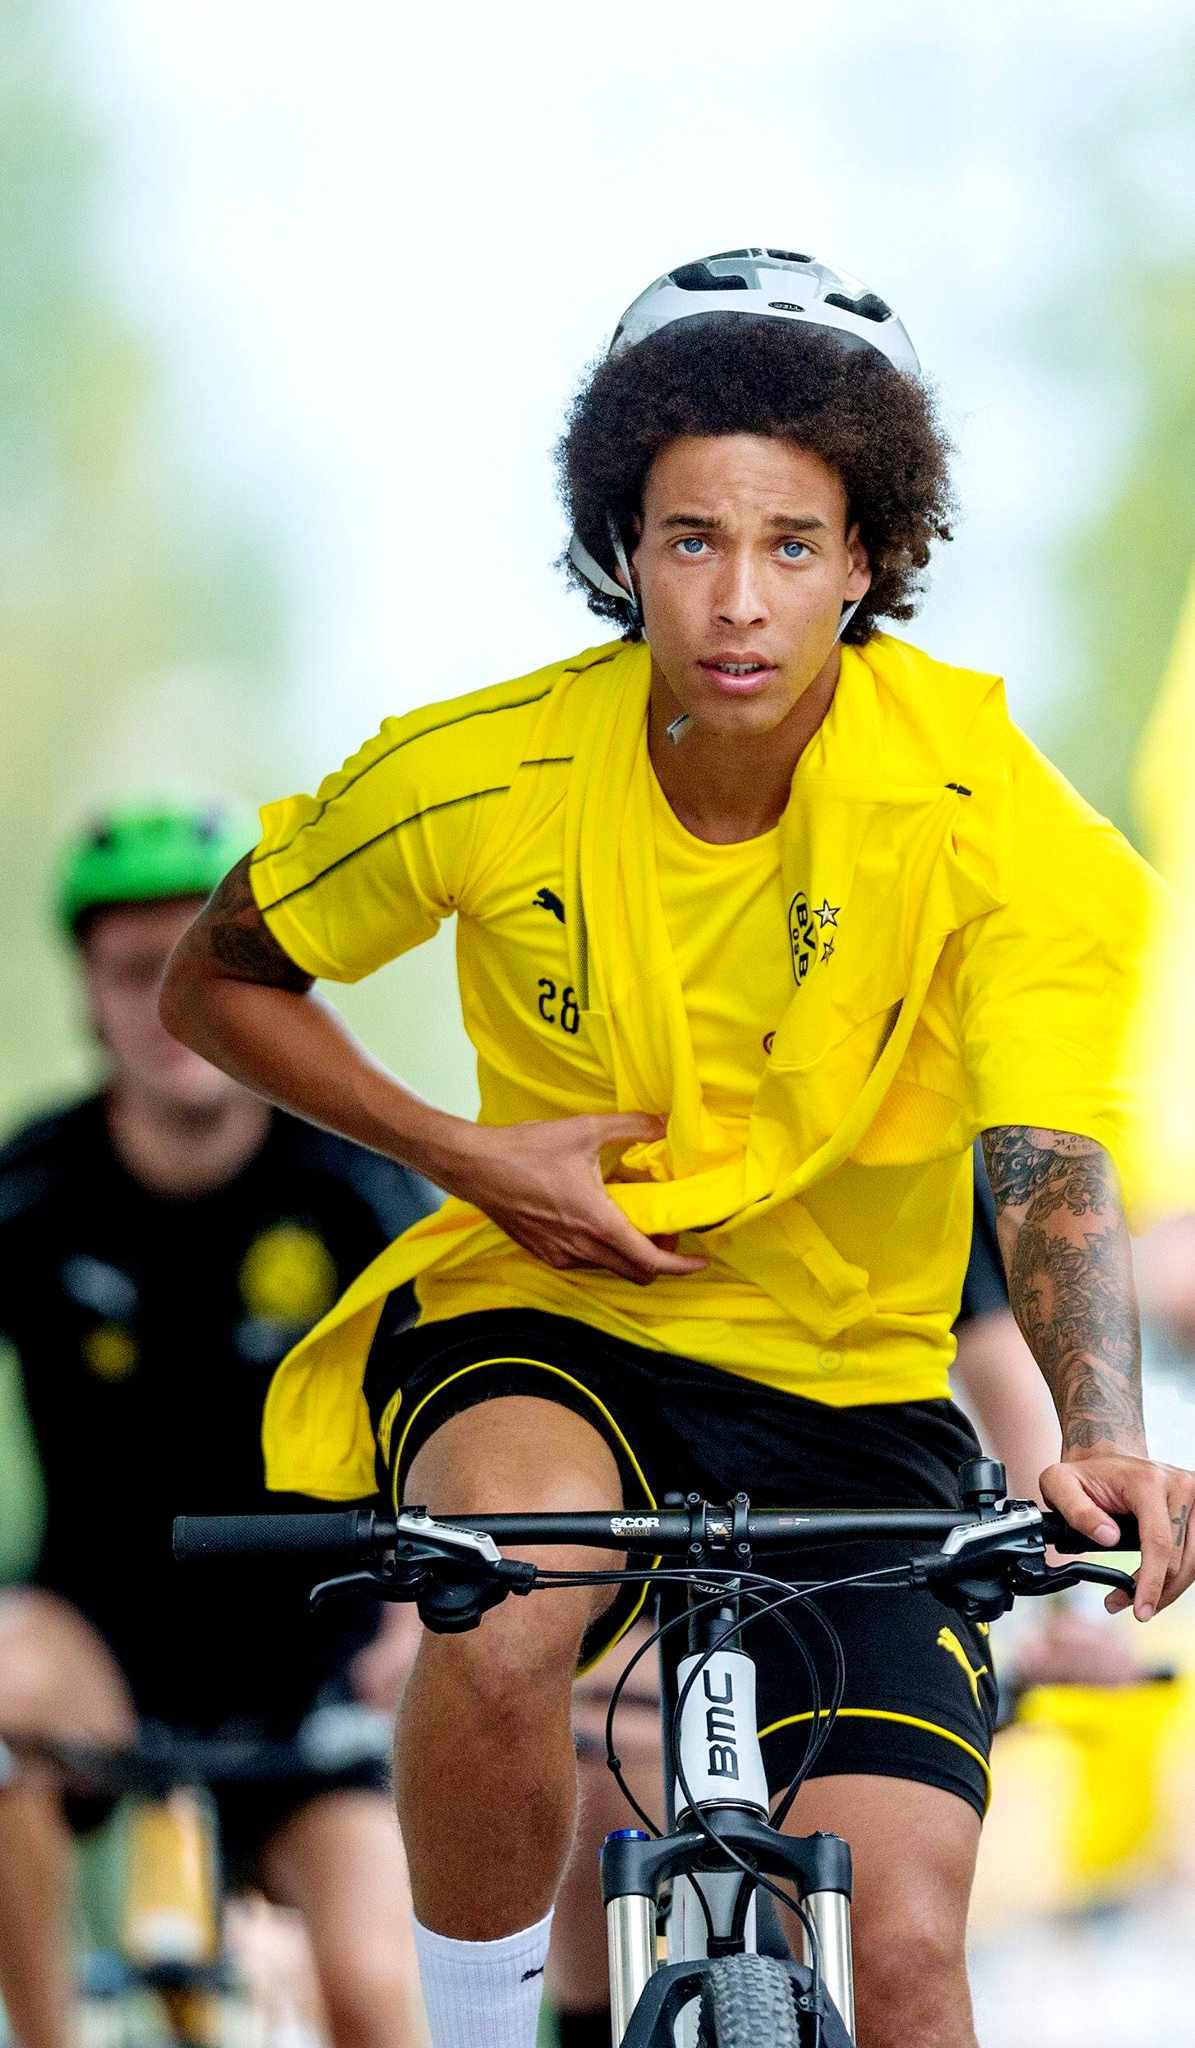 Axel Witsel Bij Dortmund. | Football Players, Dortmund, Axel Witsel